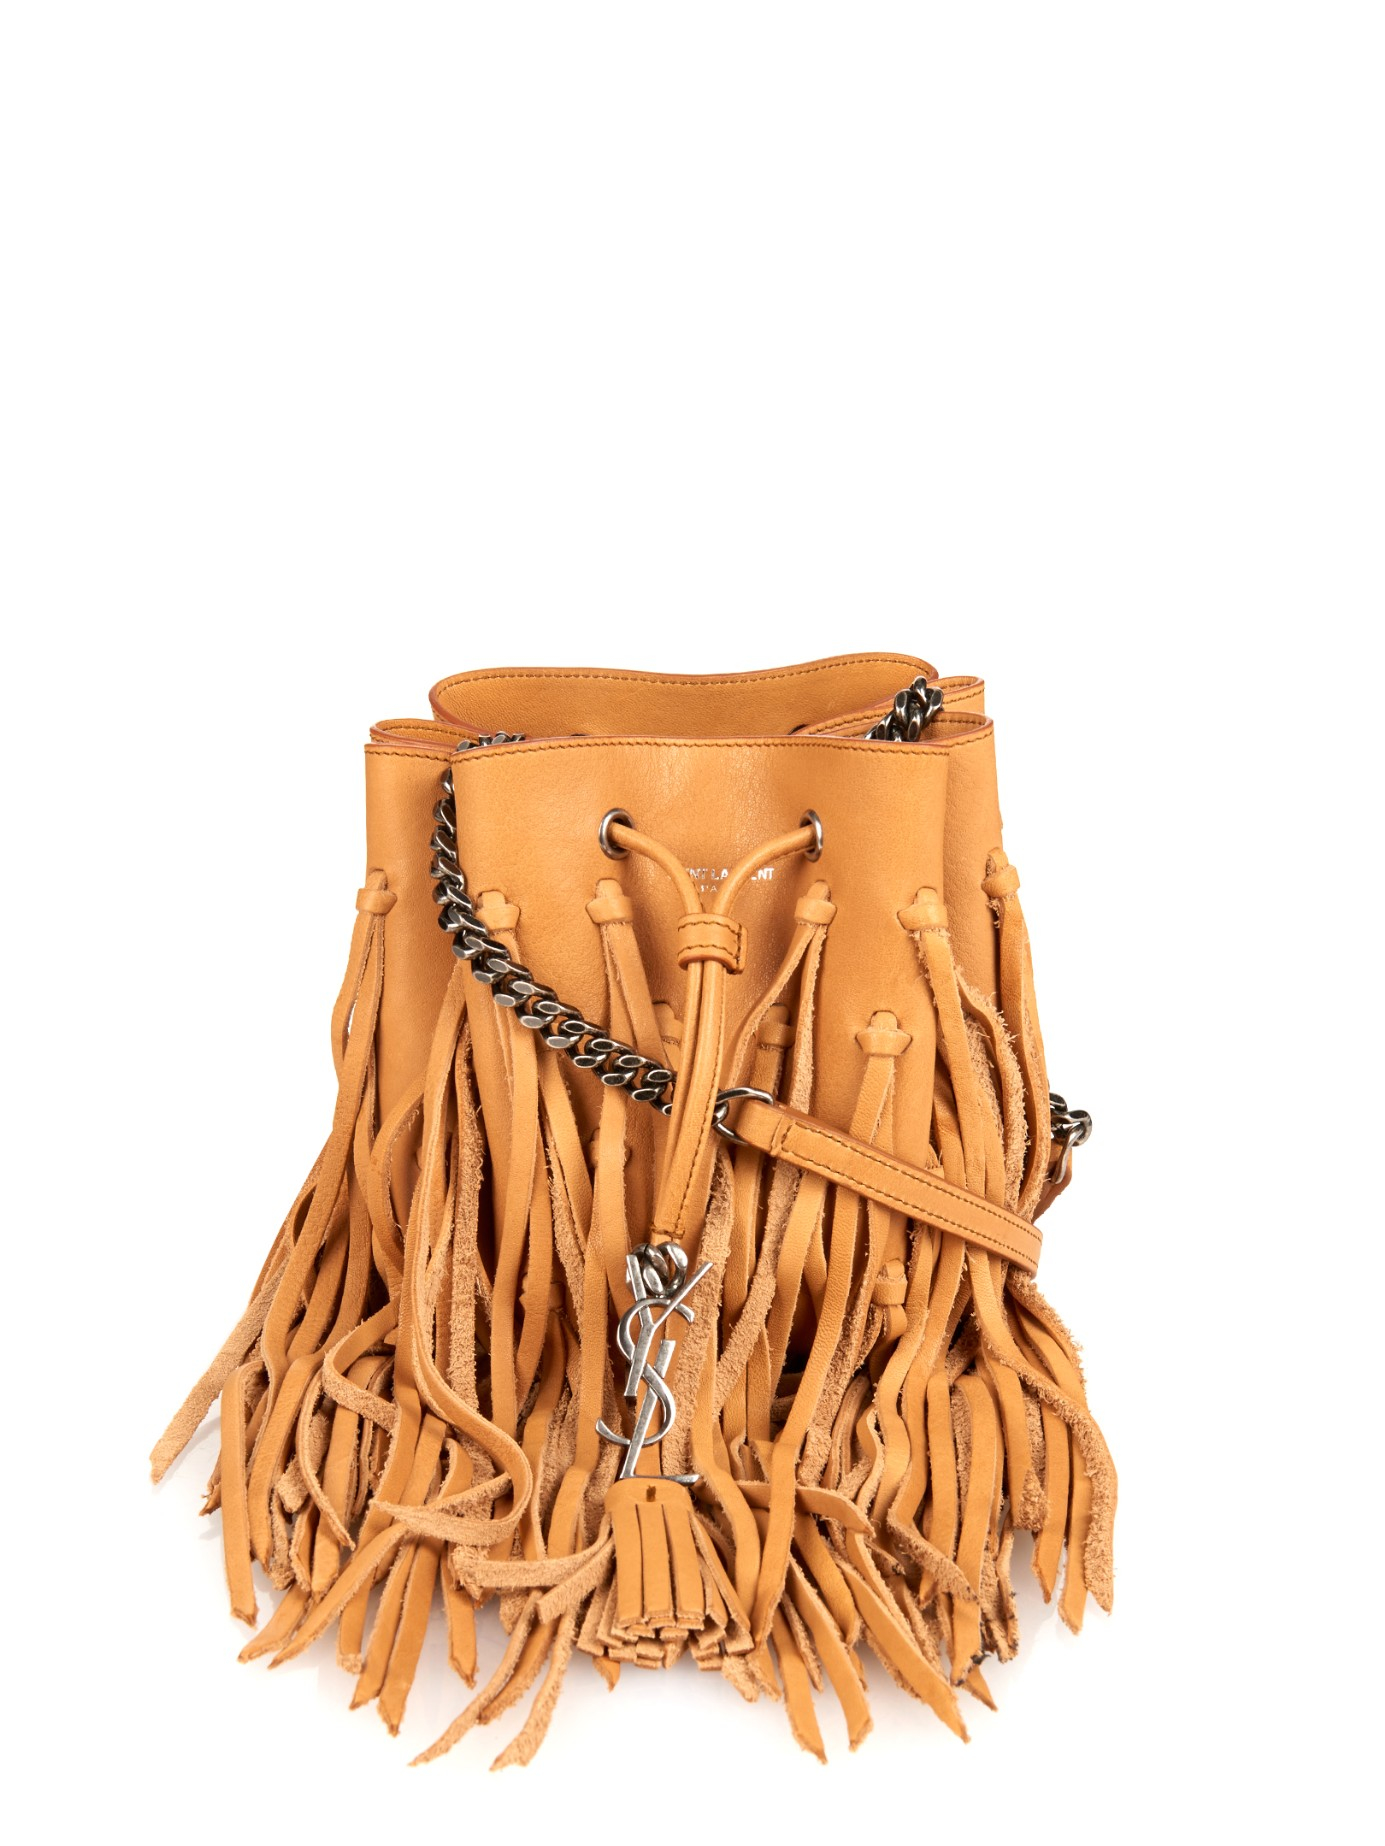 Black Leather Culture Bag Amelia Crossbody Fringe Convertible Riot In the financial markets, volatility refers to the standard deviation of a financial instrument and is normally expressed in annualized terms, and it may either be an absolute number ($5) or a percentage (5%).